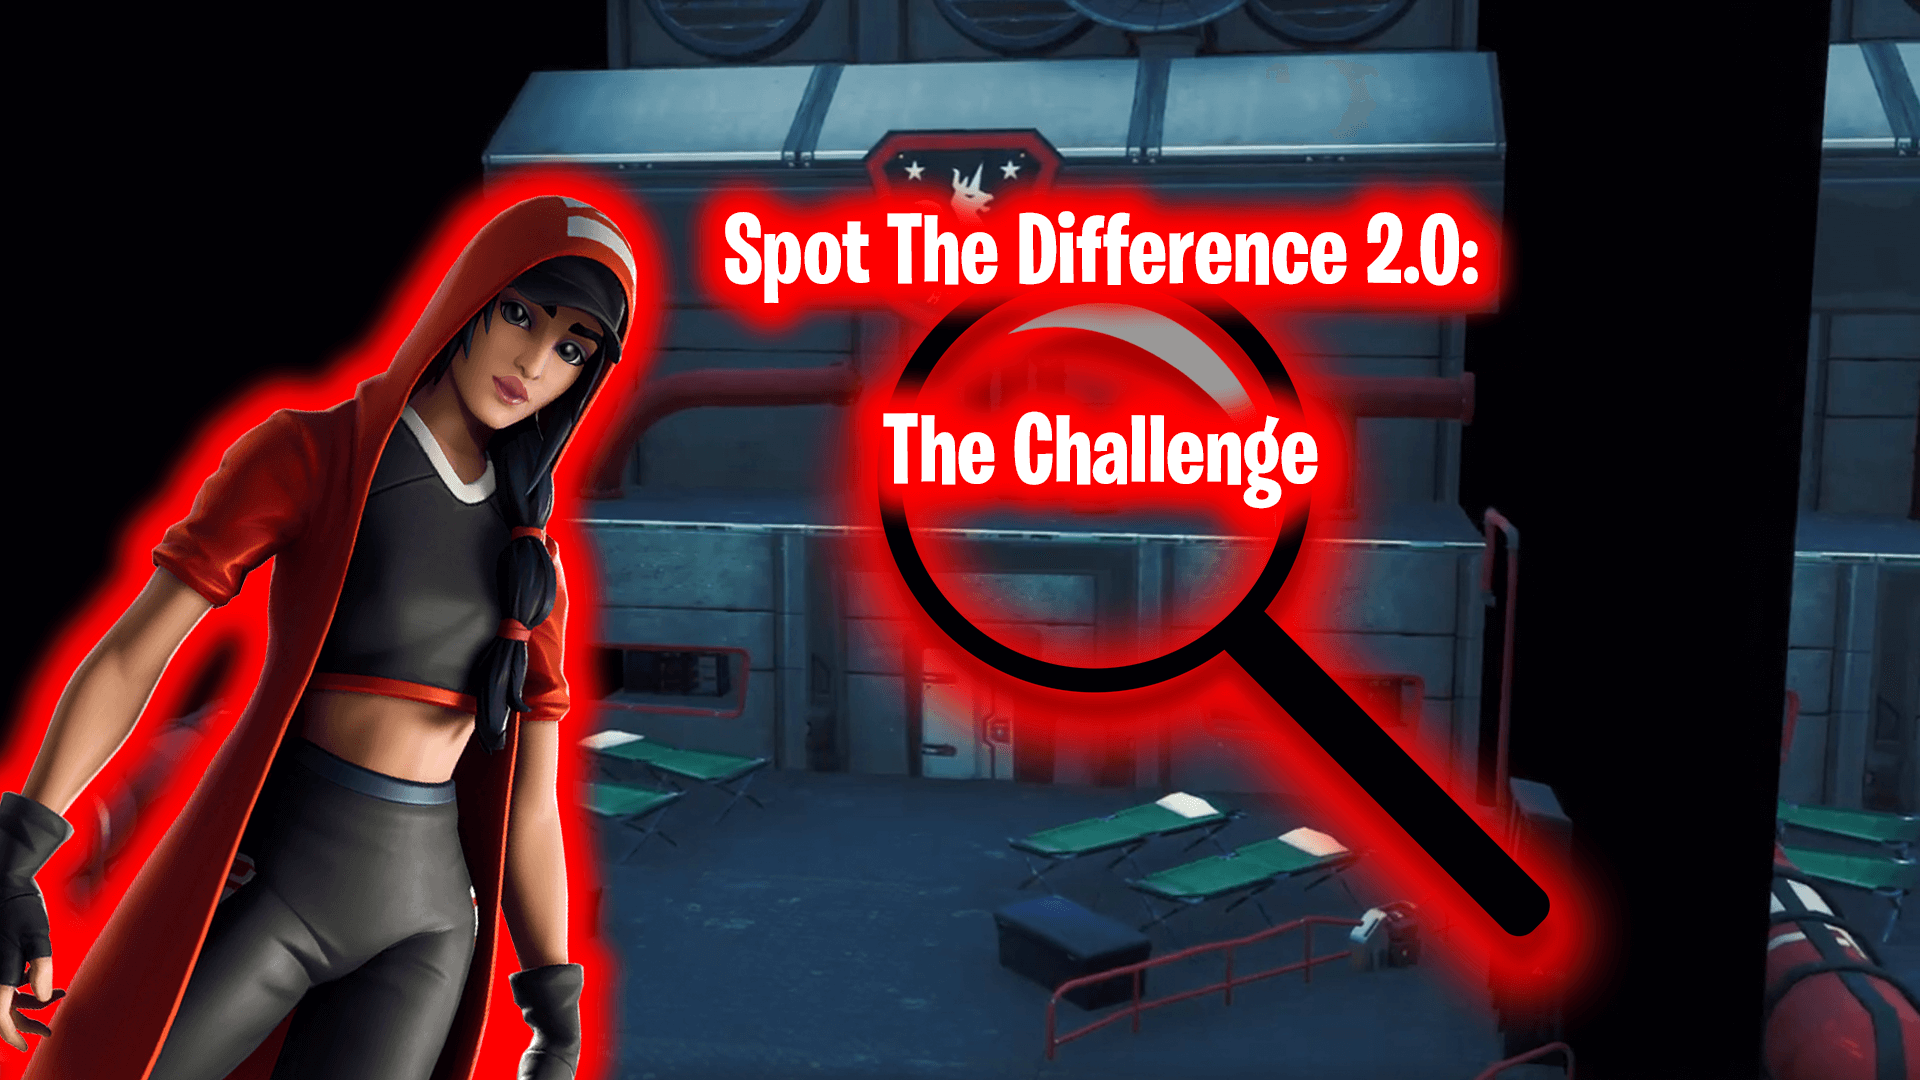 SPOT THE DIFFERENCE 2.0: THE CHALLENGE